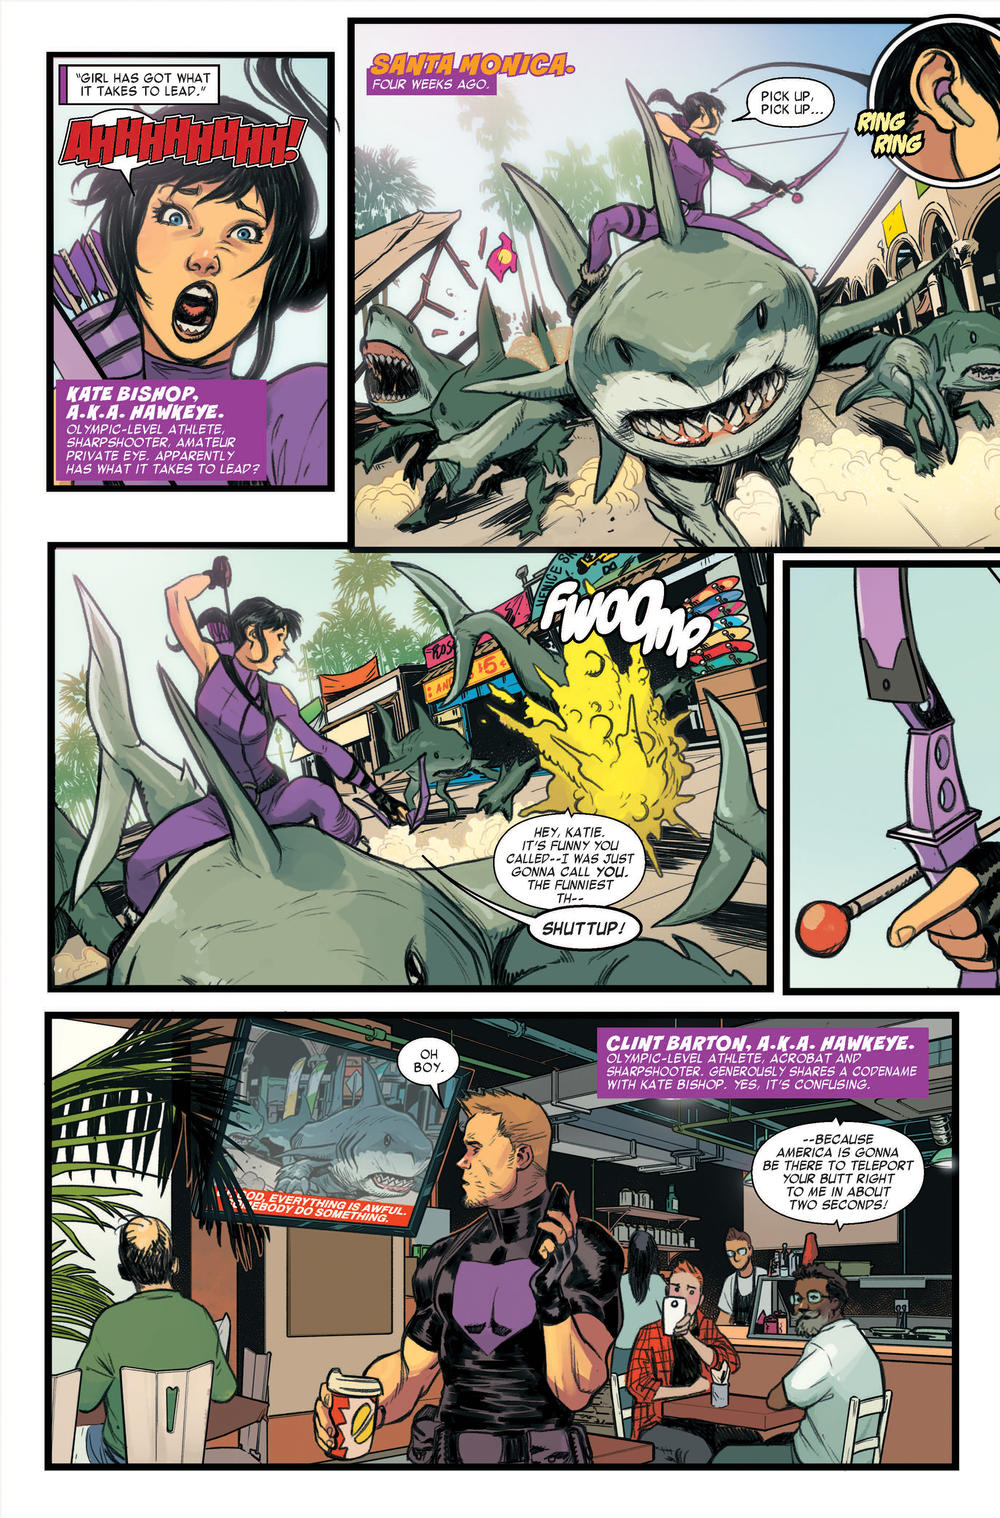 West Coast Avengers 1 preview page